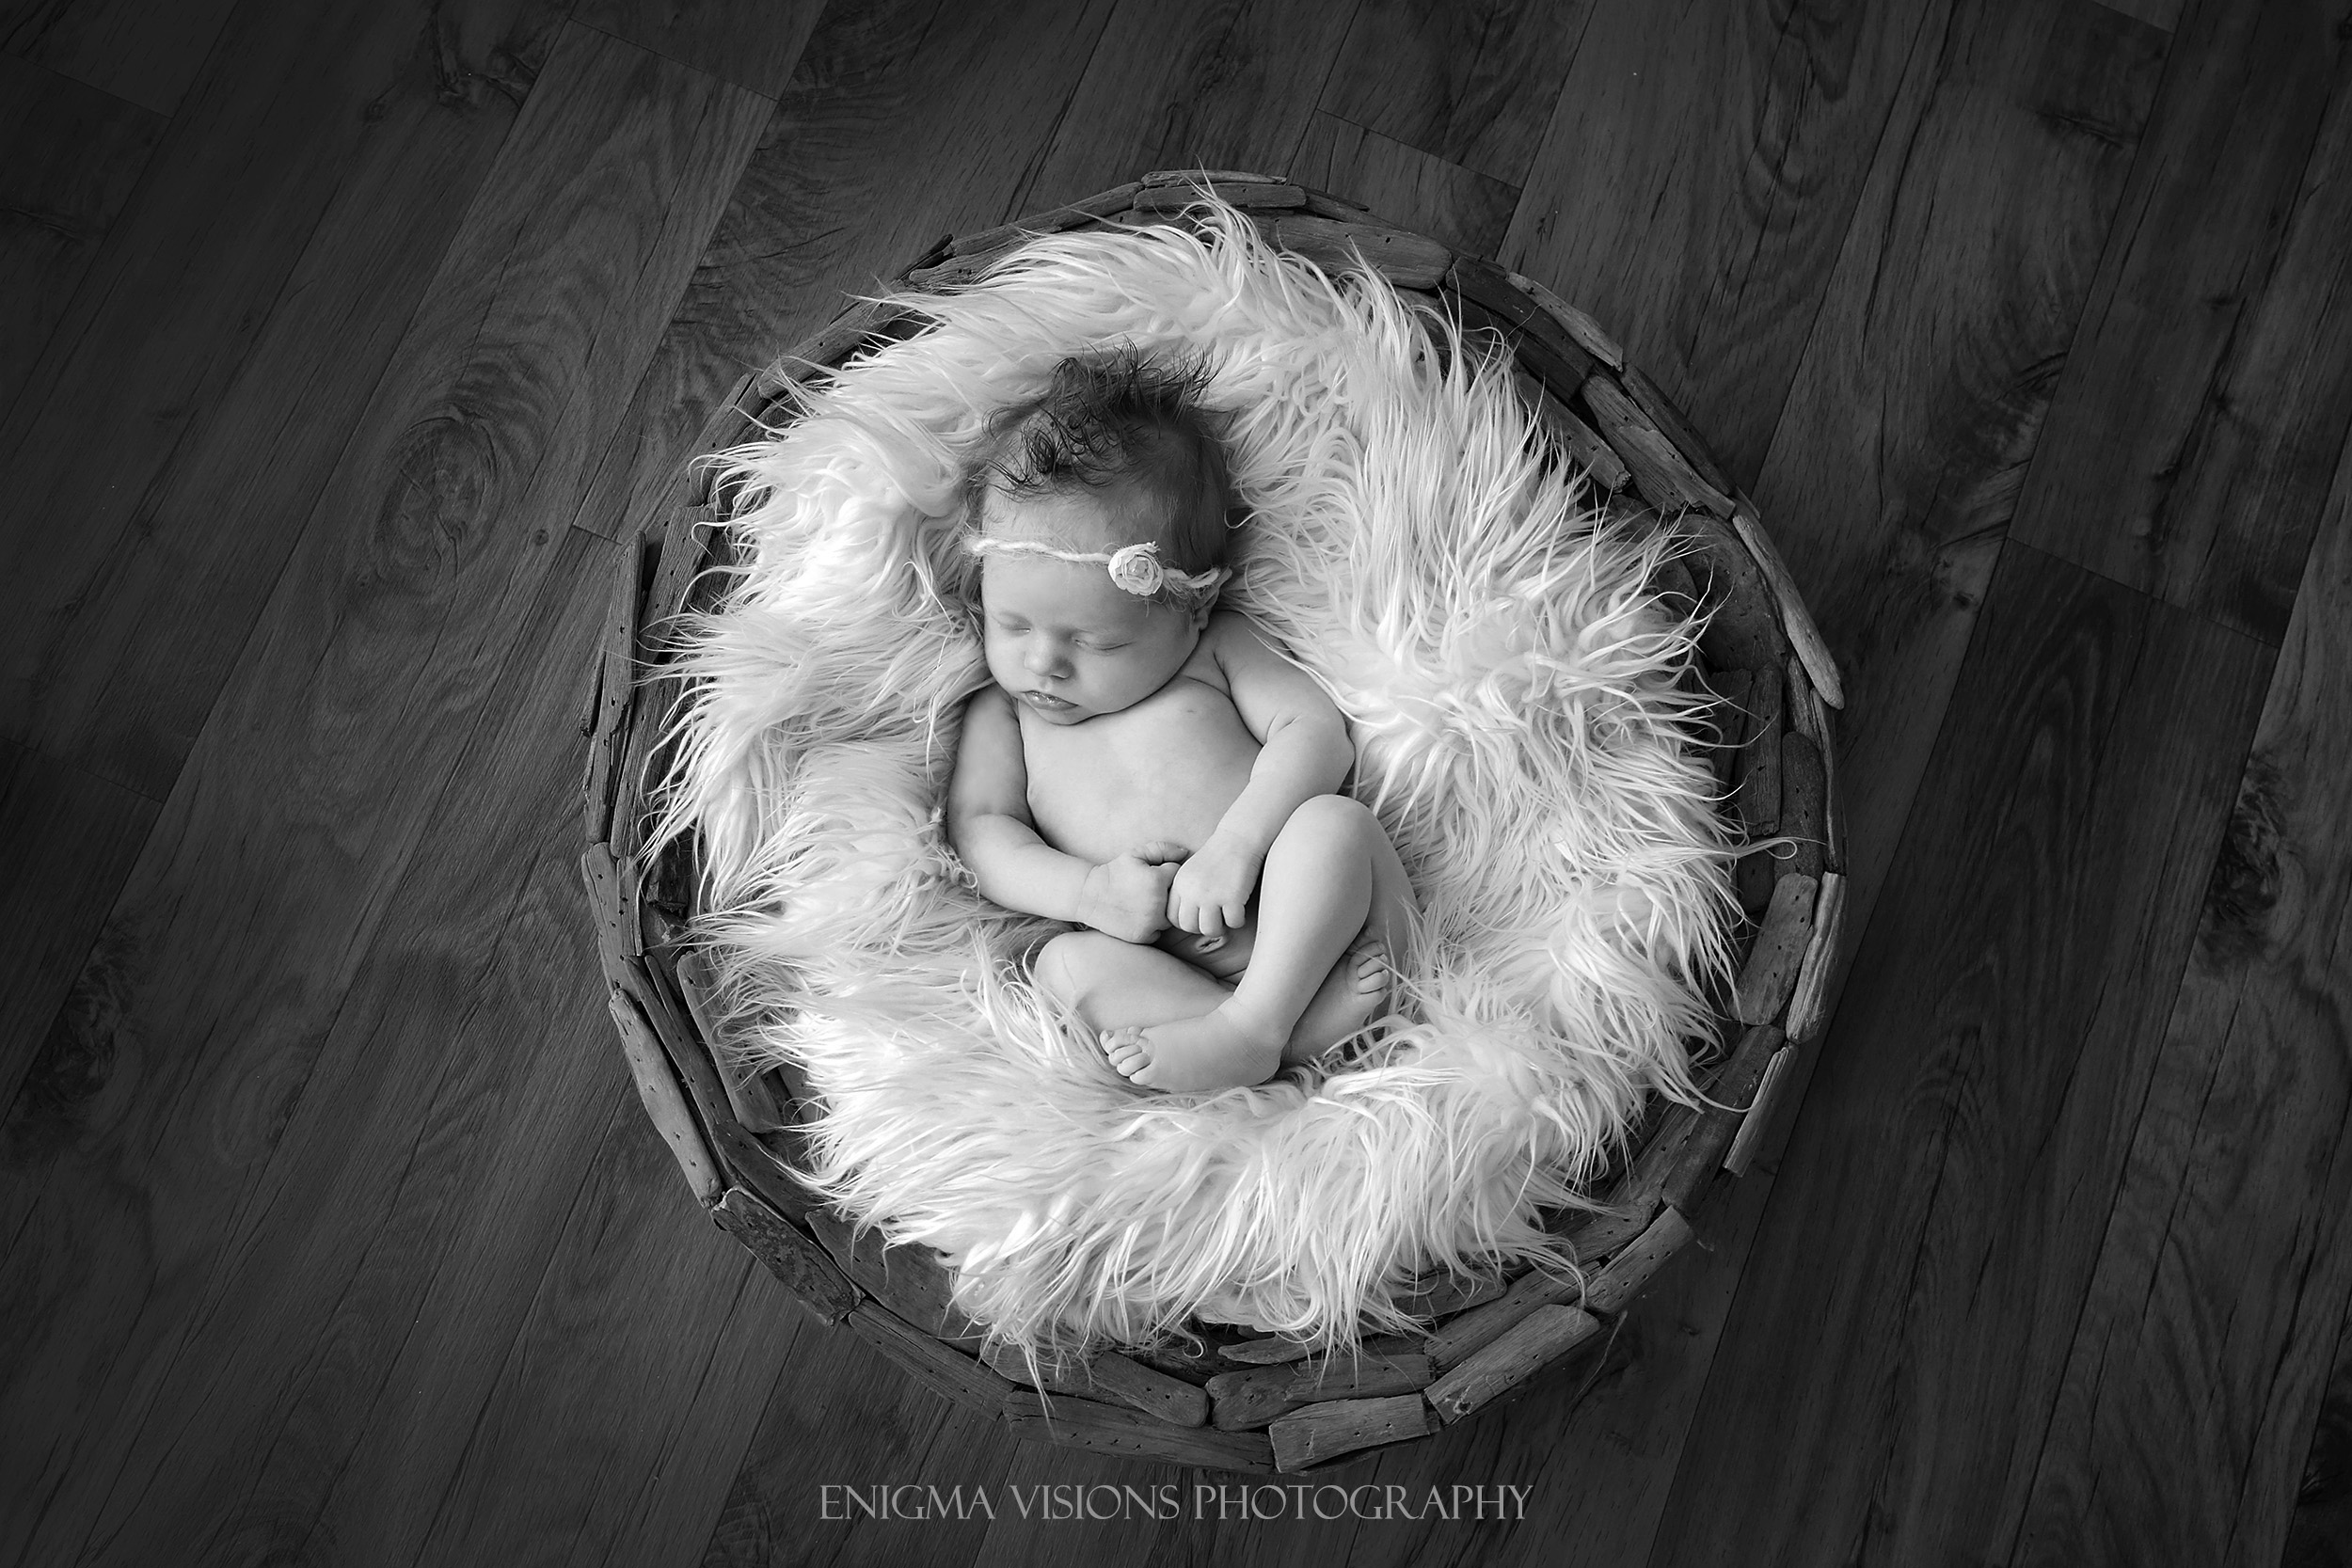 enigma_visions_photography_newborn (10).jpg